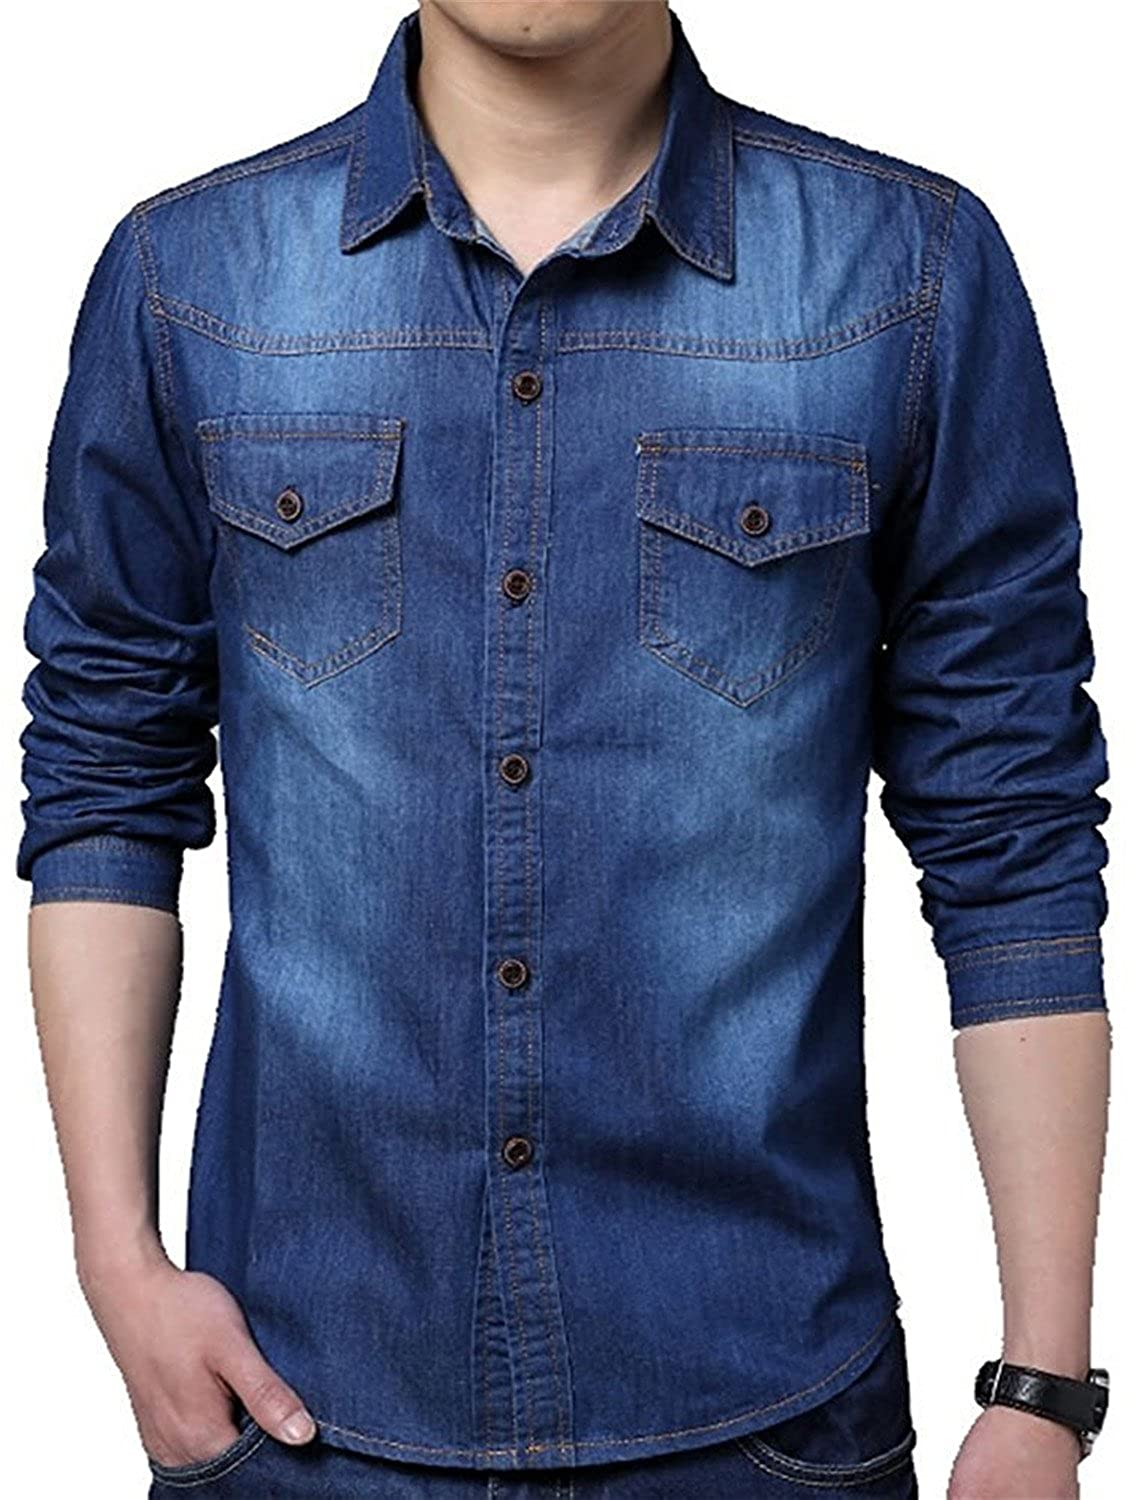 Brucest Mens Fashion Autumn Fashion Classic Long Sleeve Denim Shirt XS-2XL product of good quallty